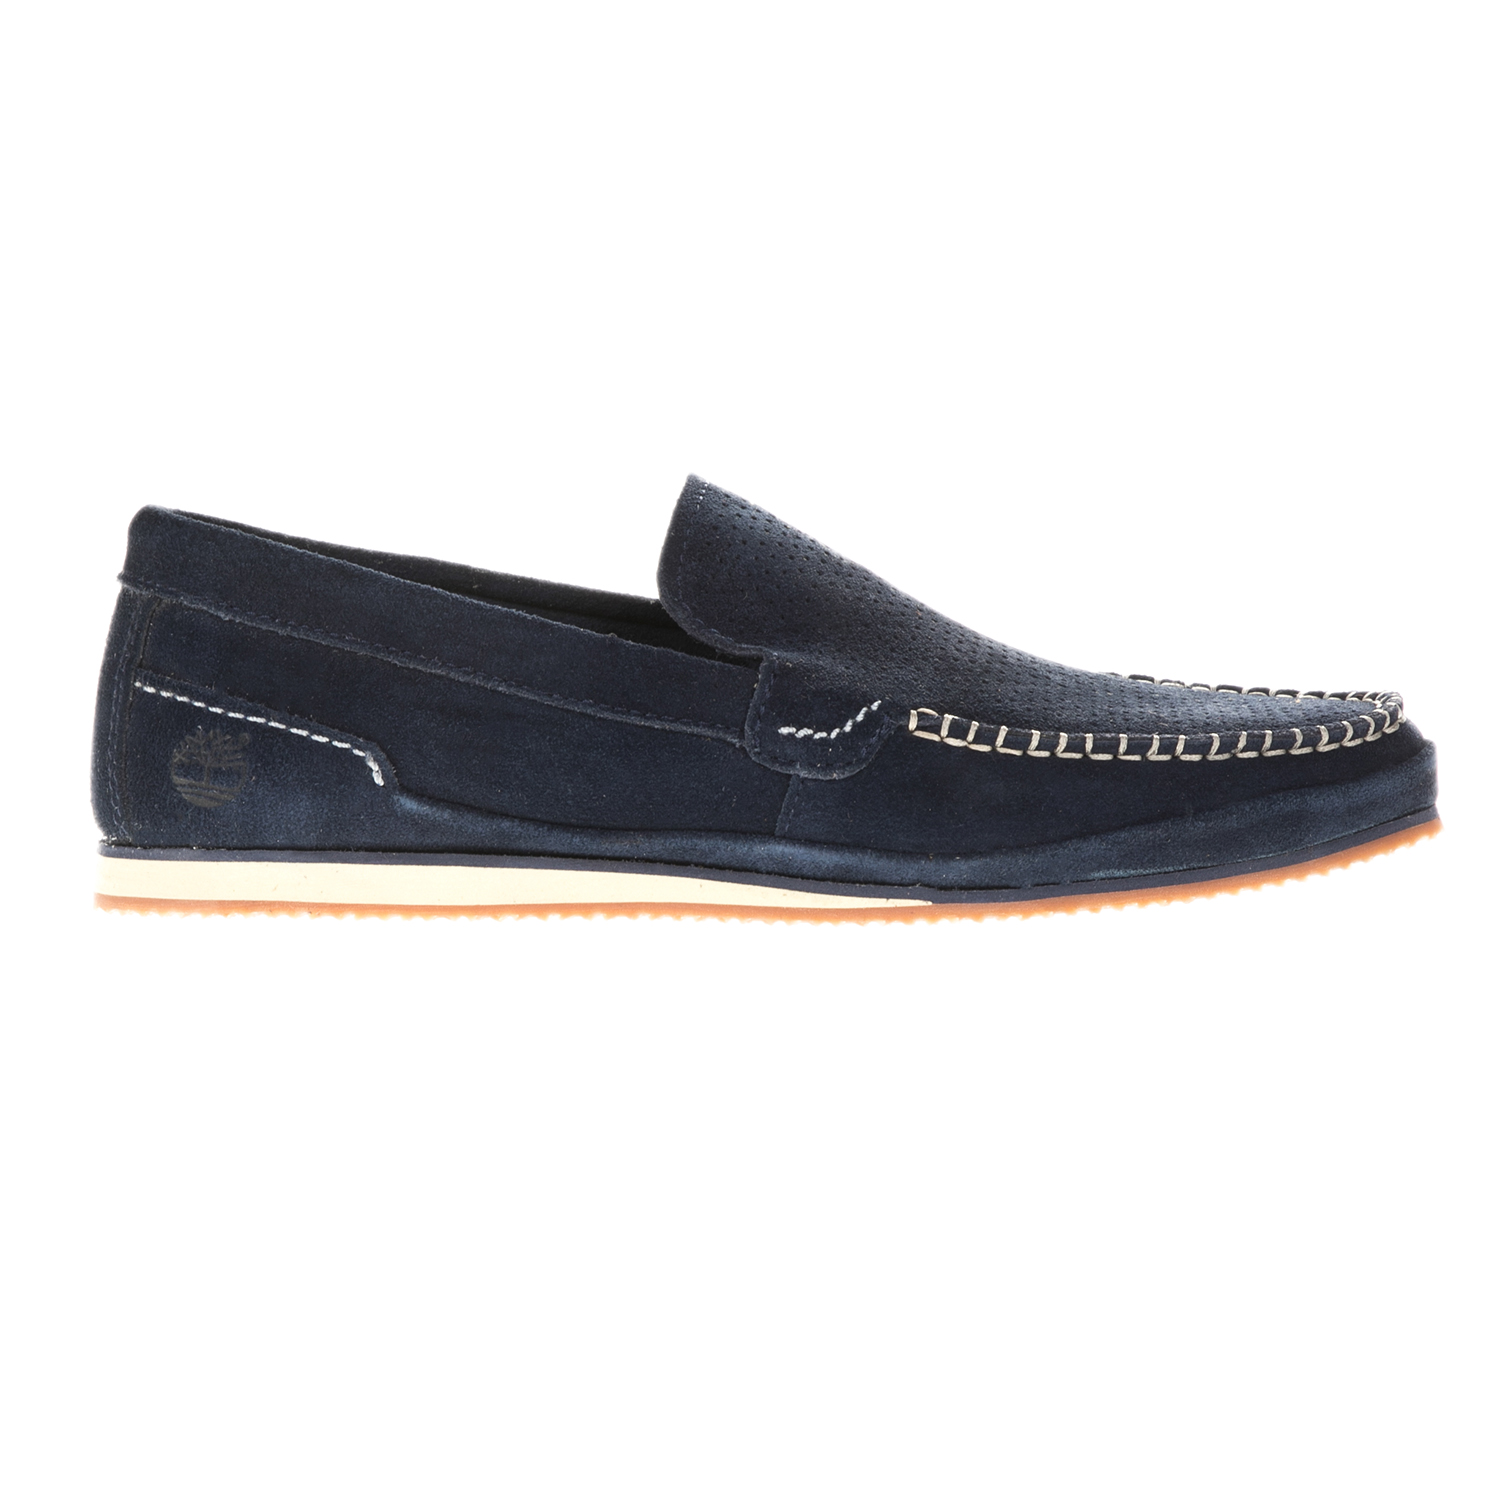 TIMBERLAND – Ανδρικά παπούτσια TIMBERLAND 6957A-A HAYES VALLEY LOAFER μπλε